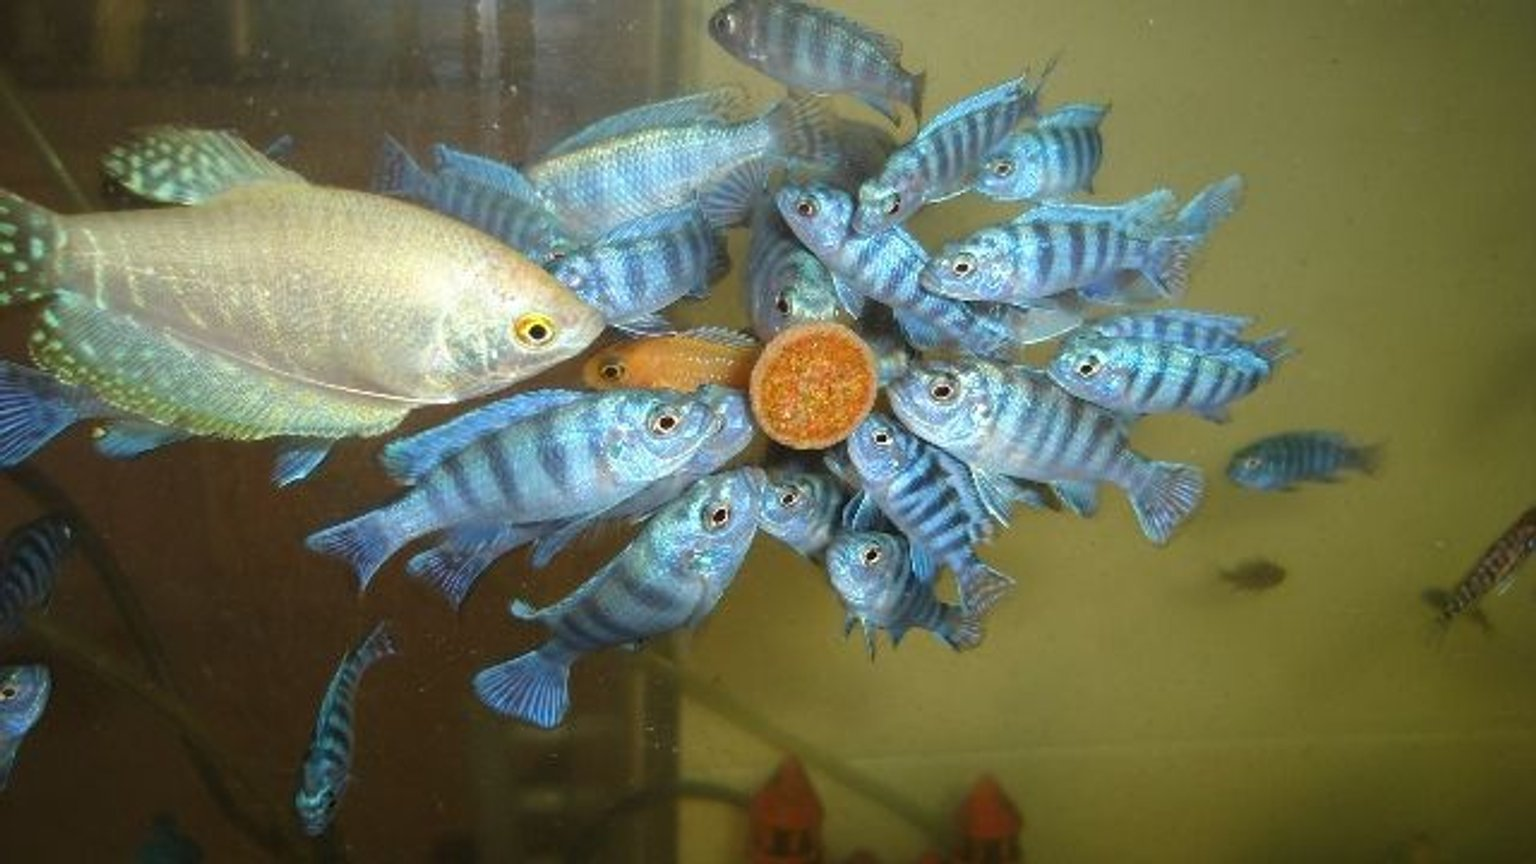 freshwater fish - trichogaster trichopterus - blue gourami stocking in 70 gallons tank - cichlid malawi gurami